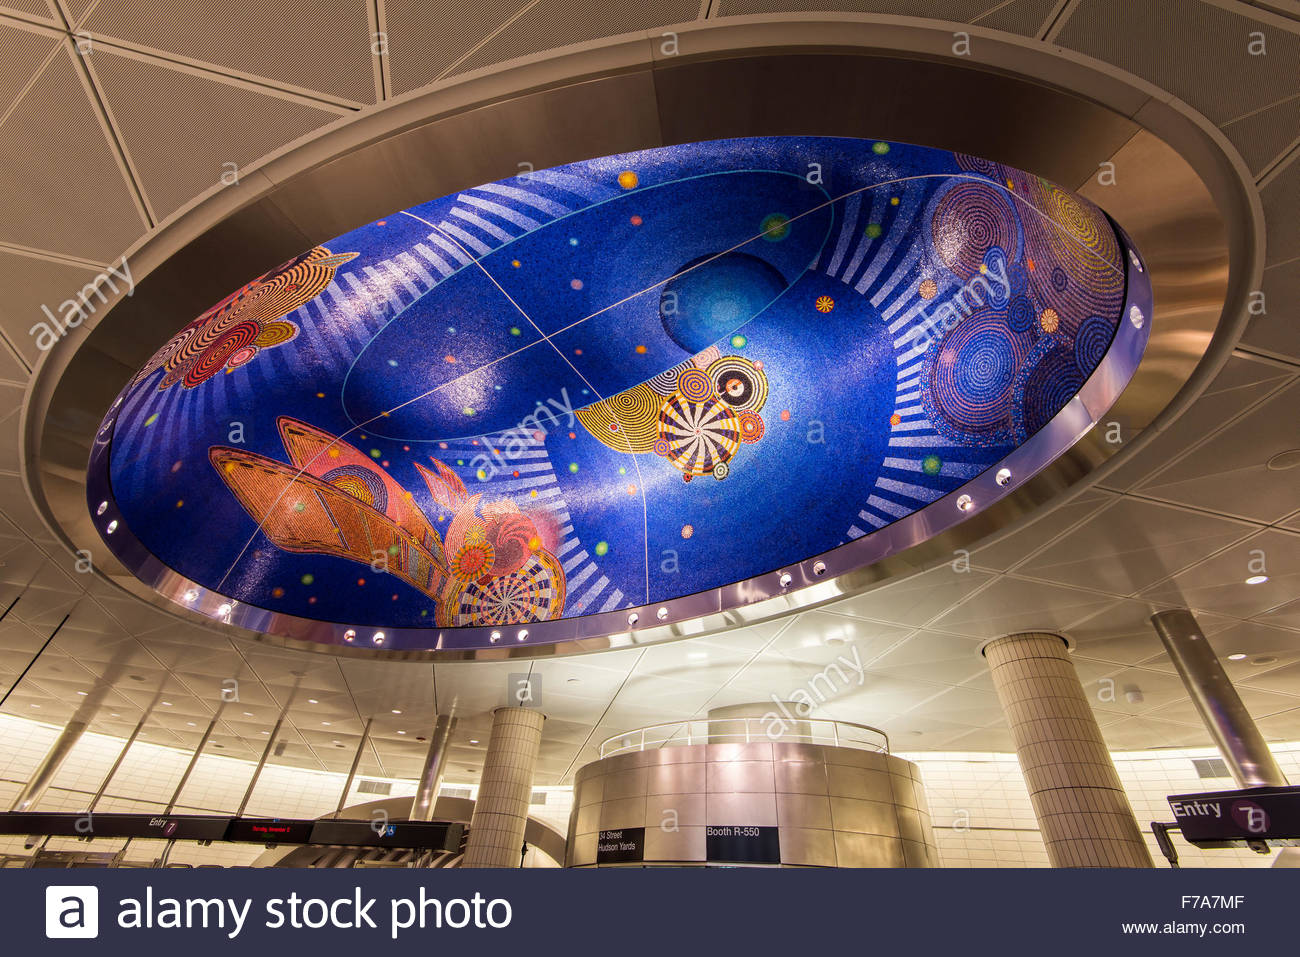 Colorful glass mosaic by artist Xenobia Bailey at the 34th Street - Hudson Yards subway station, Manhattan, New - Stock Image